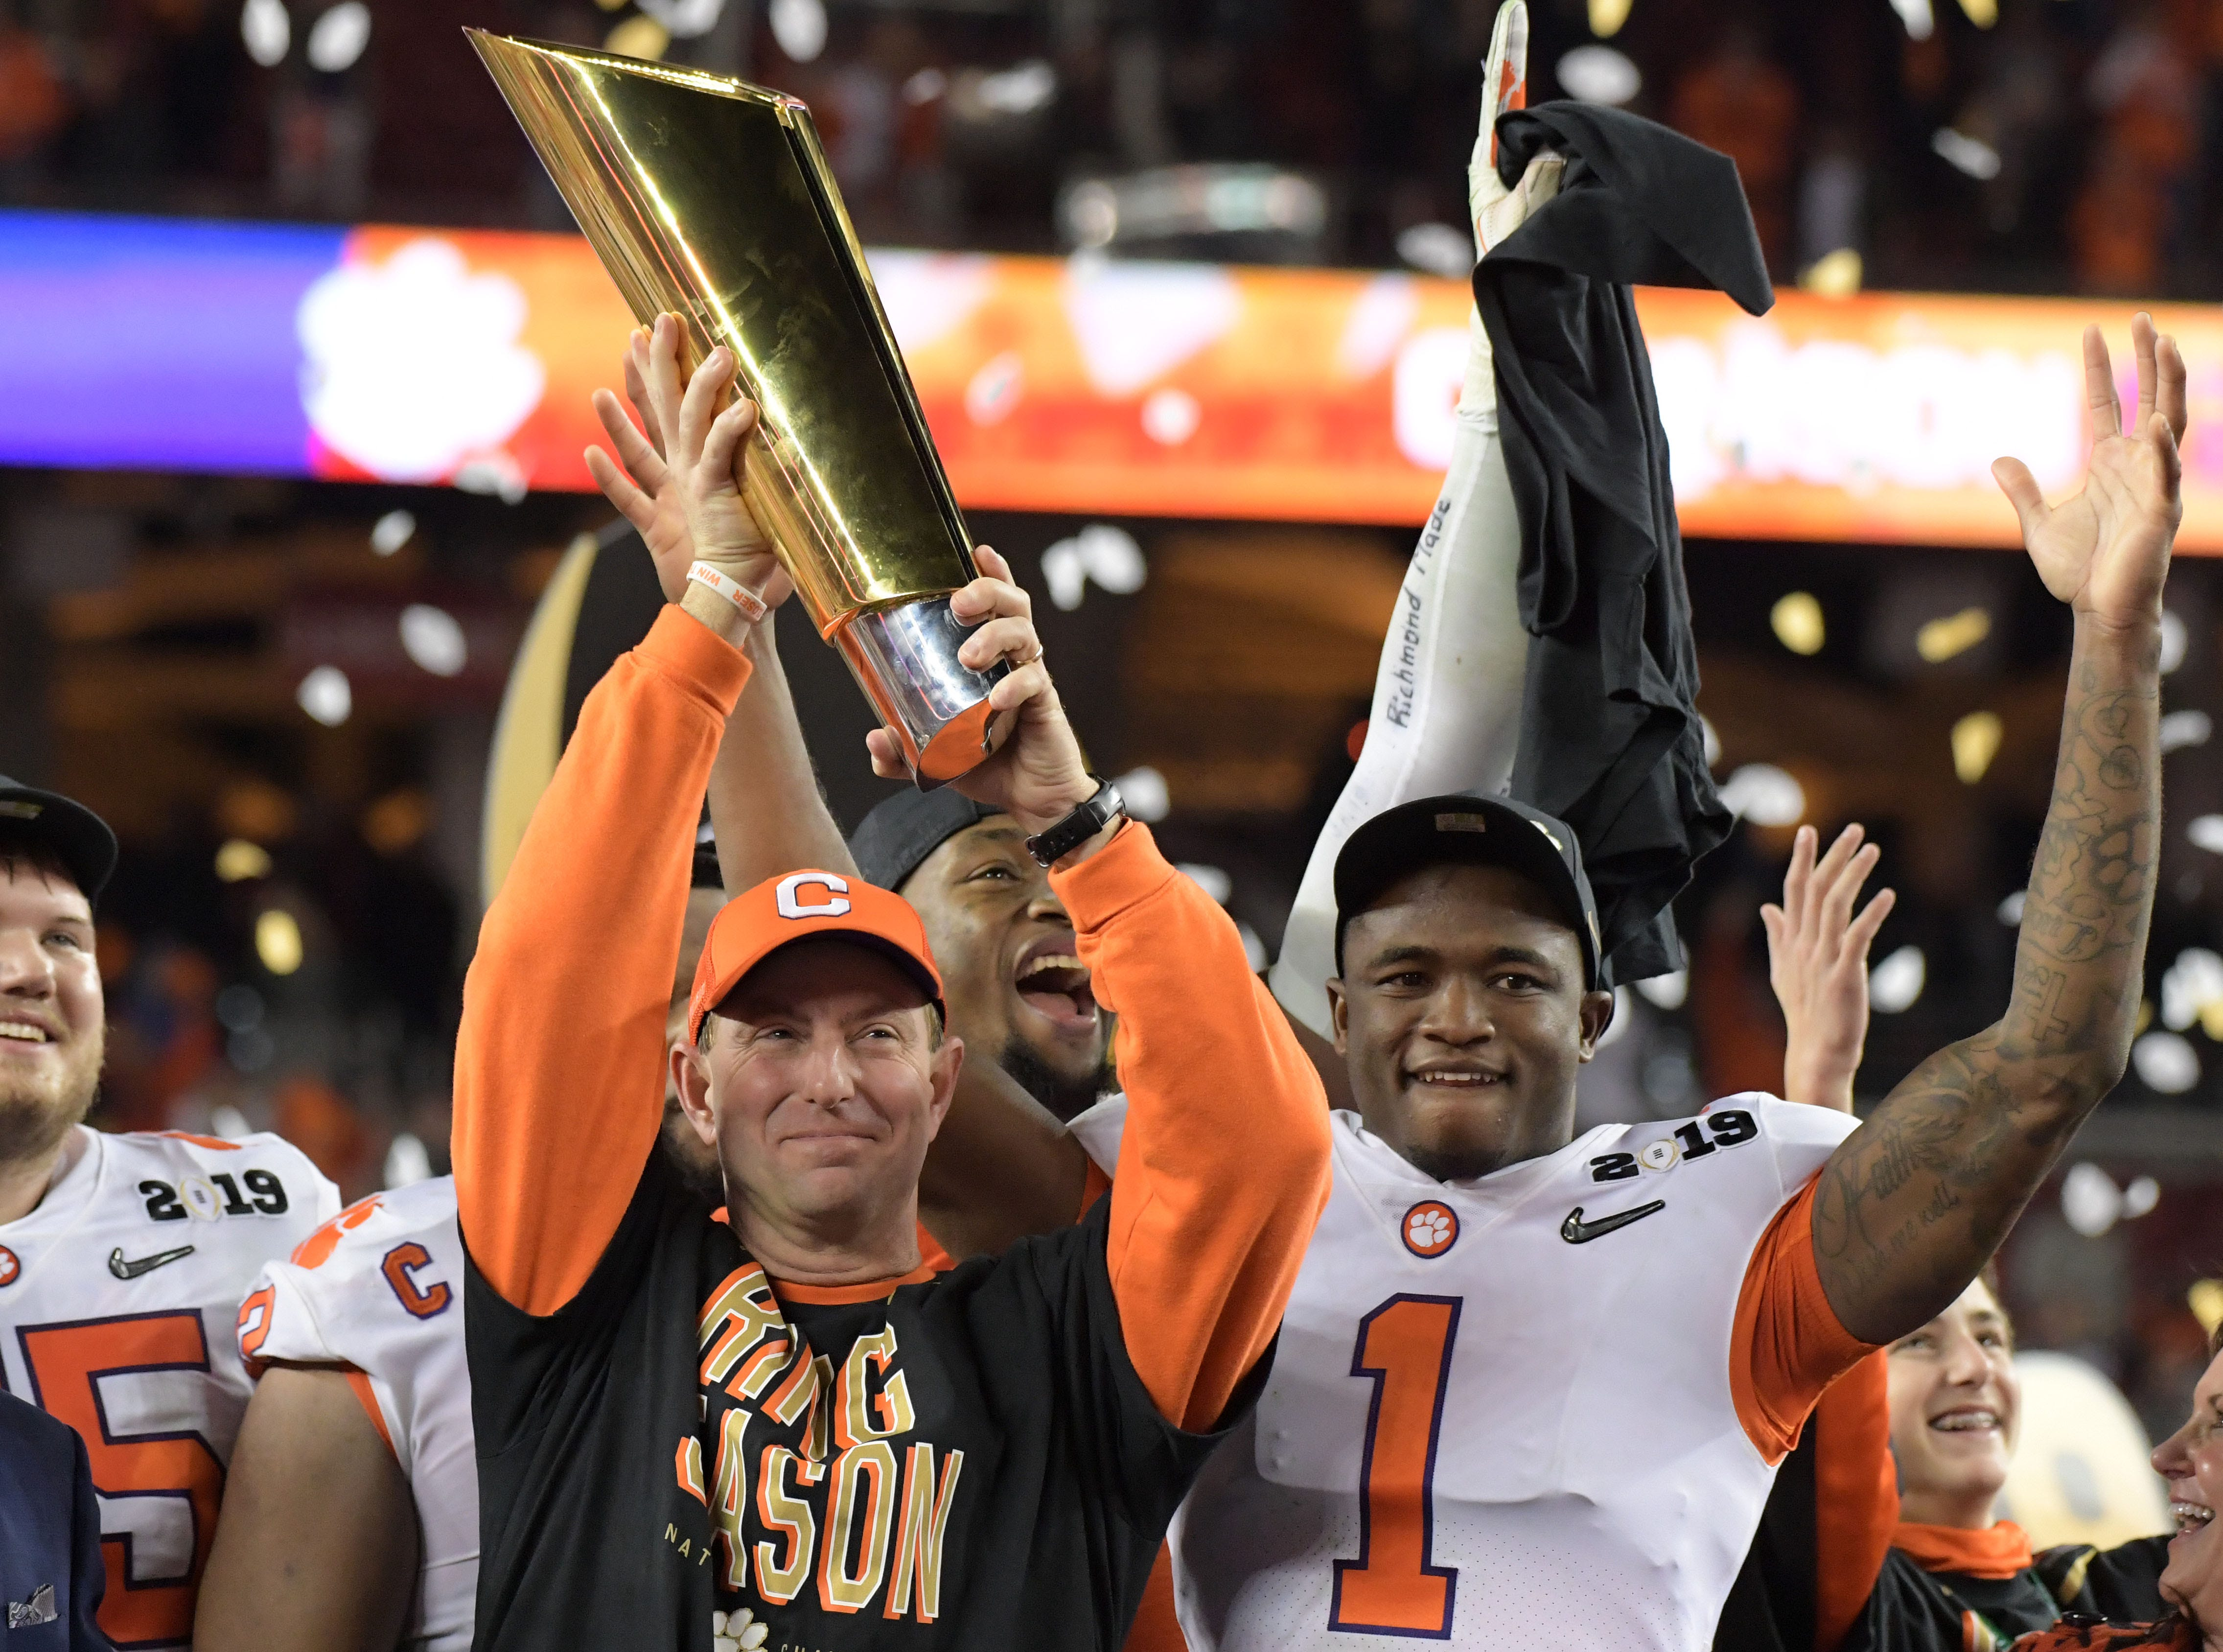 Clemson Tigers head coach Dabo Swinney celebrates with the College Football Playoff National Championship trophy.